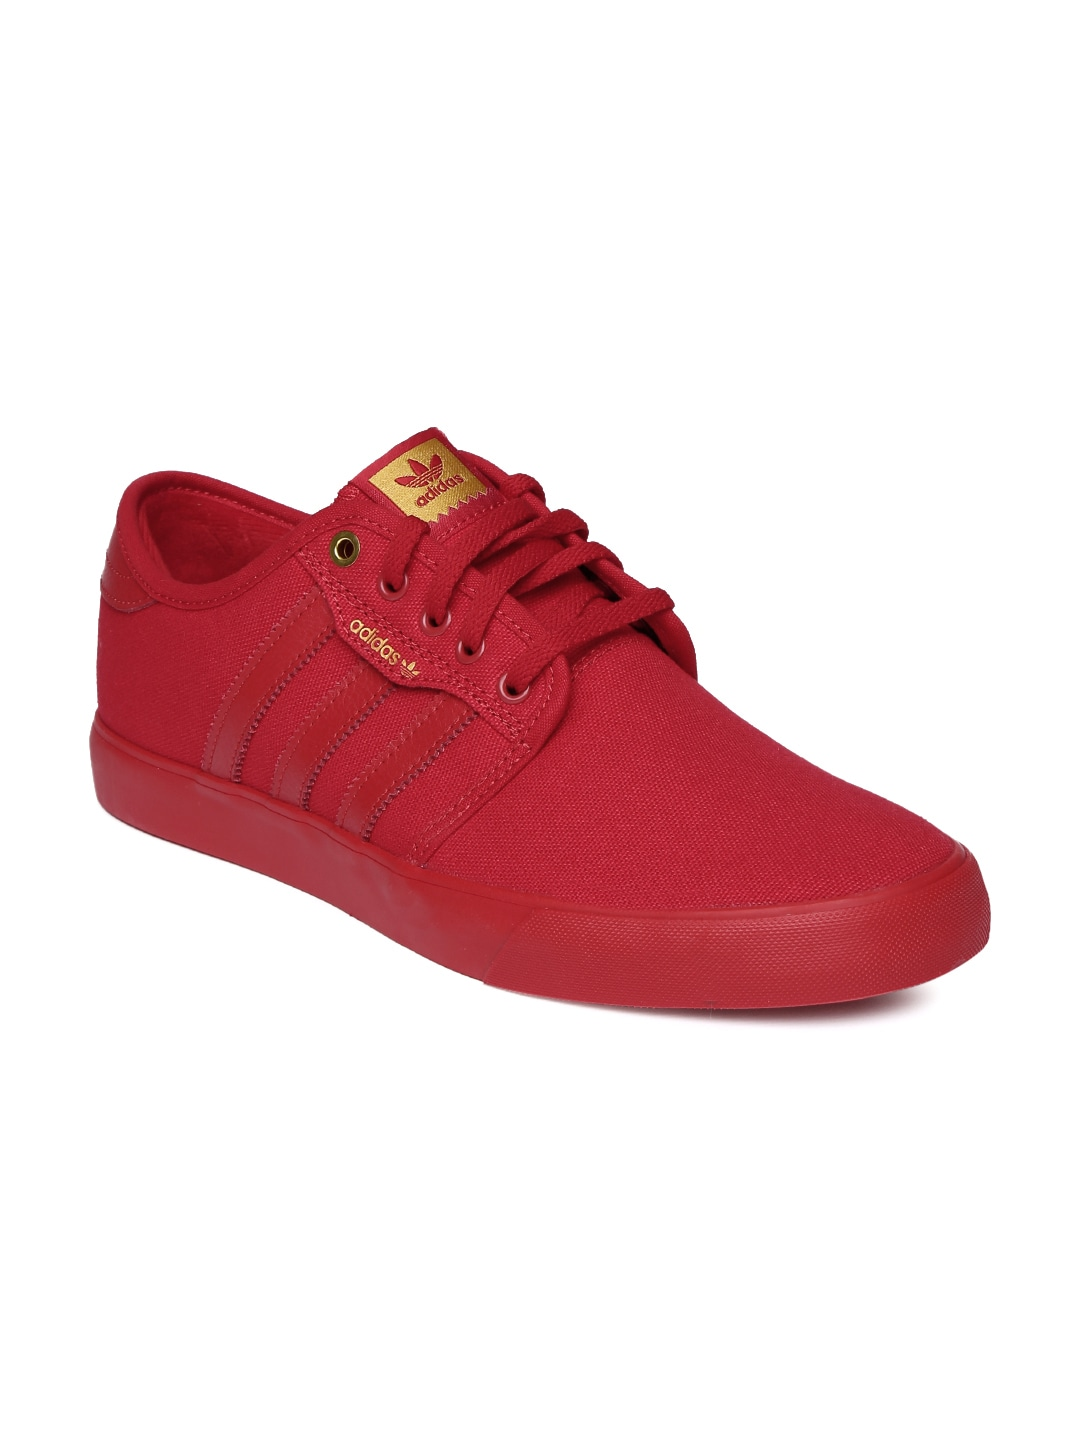 new style adb11 fab49 Adidas b27346 Originals Men Red Seeley Skateboard Shoes- Price in India